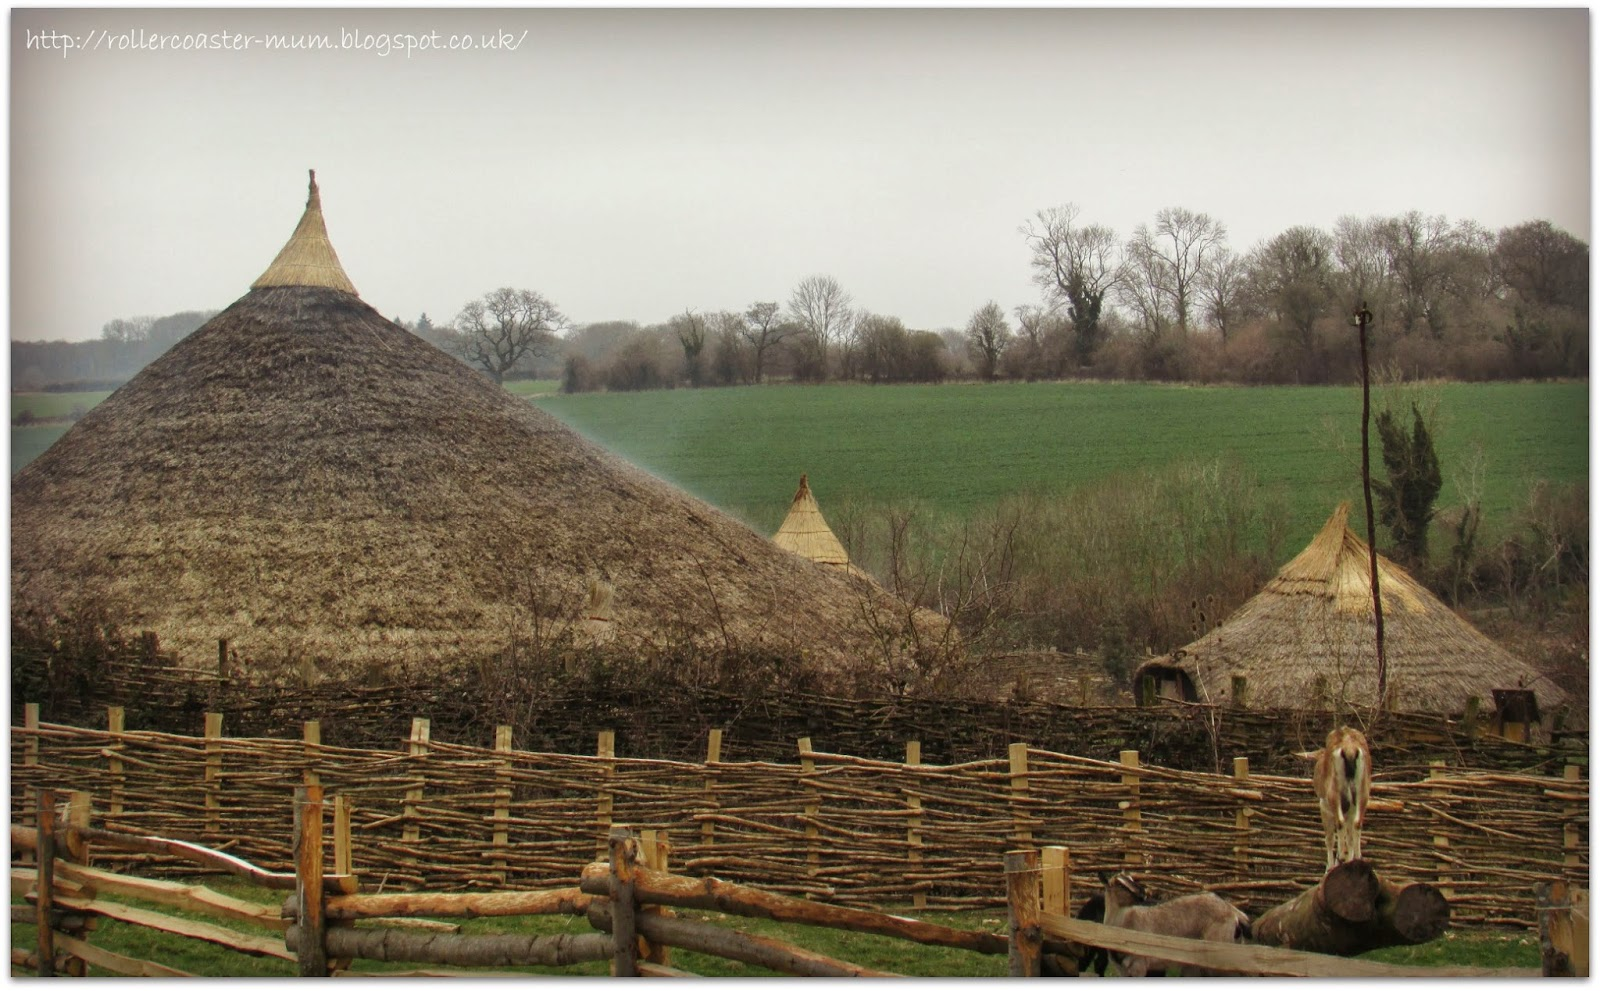 Celtic Village - Butser Ancient Farm